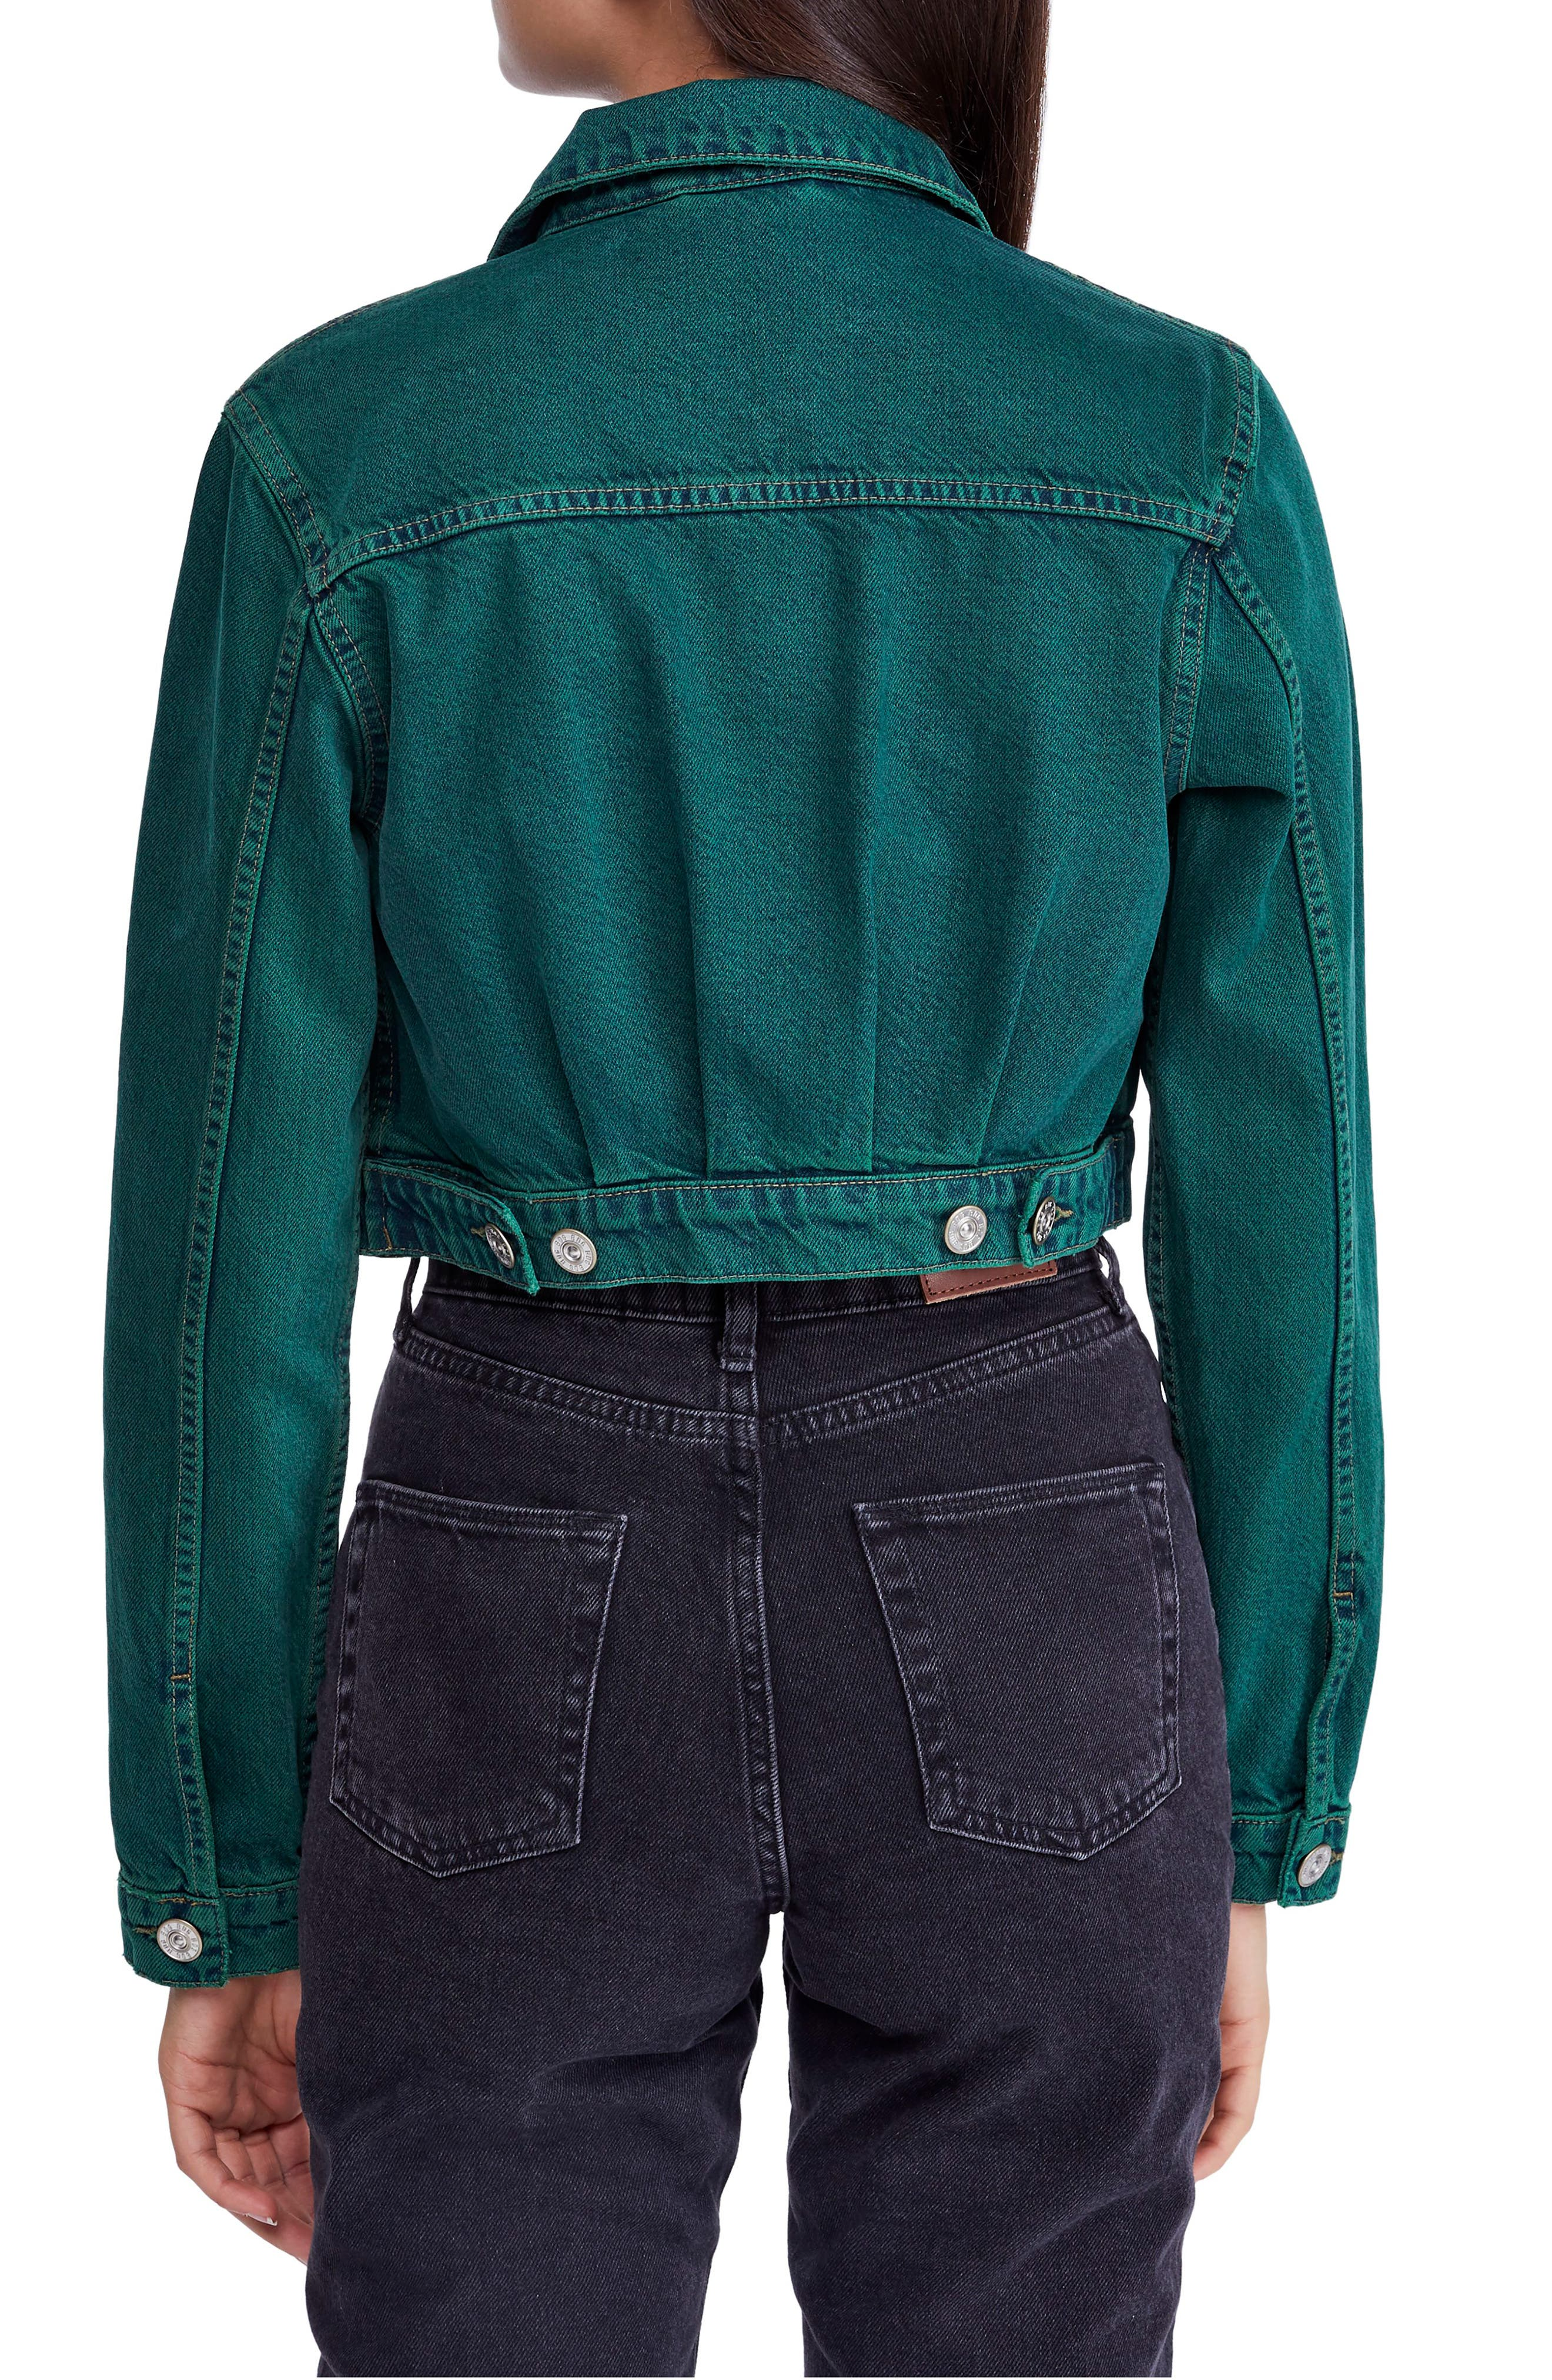 Urban Outfitters Overdyed Crop Denim Jacket,                             Alternate thumbnail 2, color,                             300